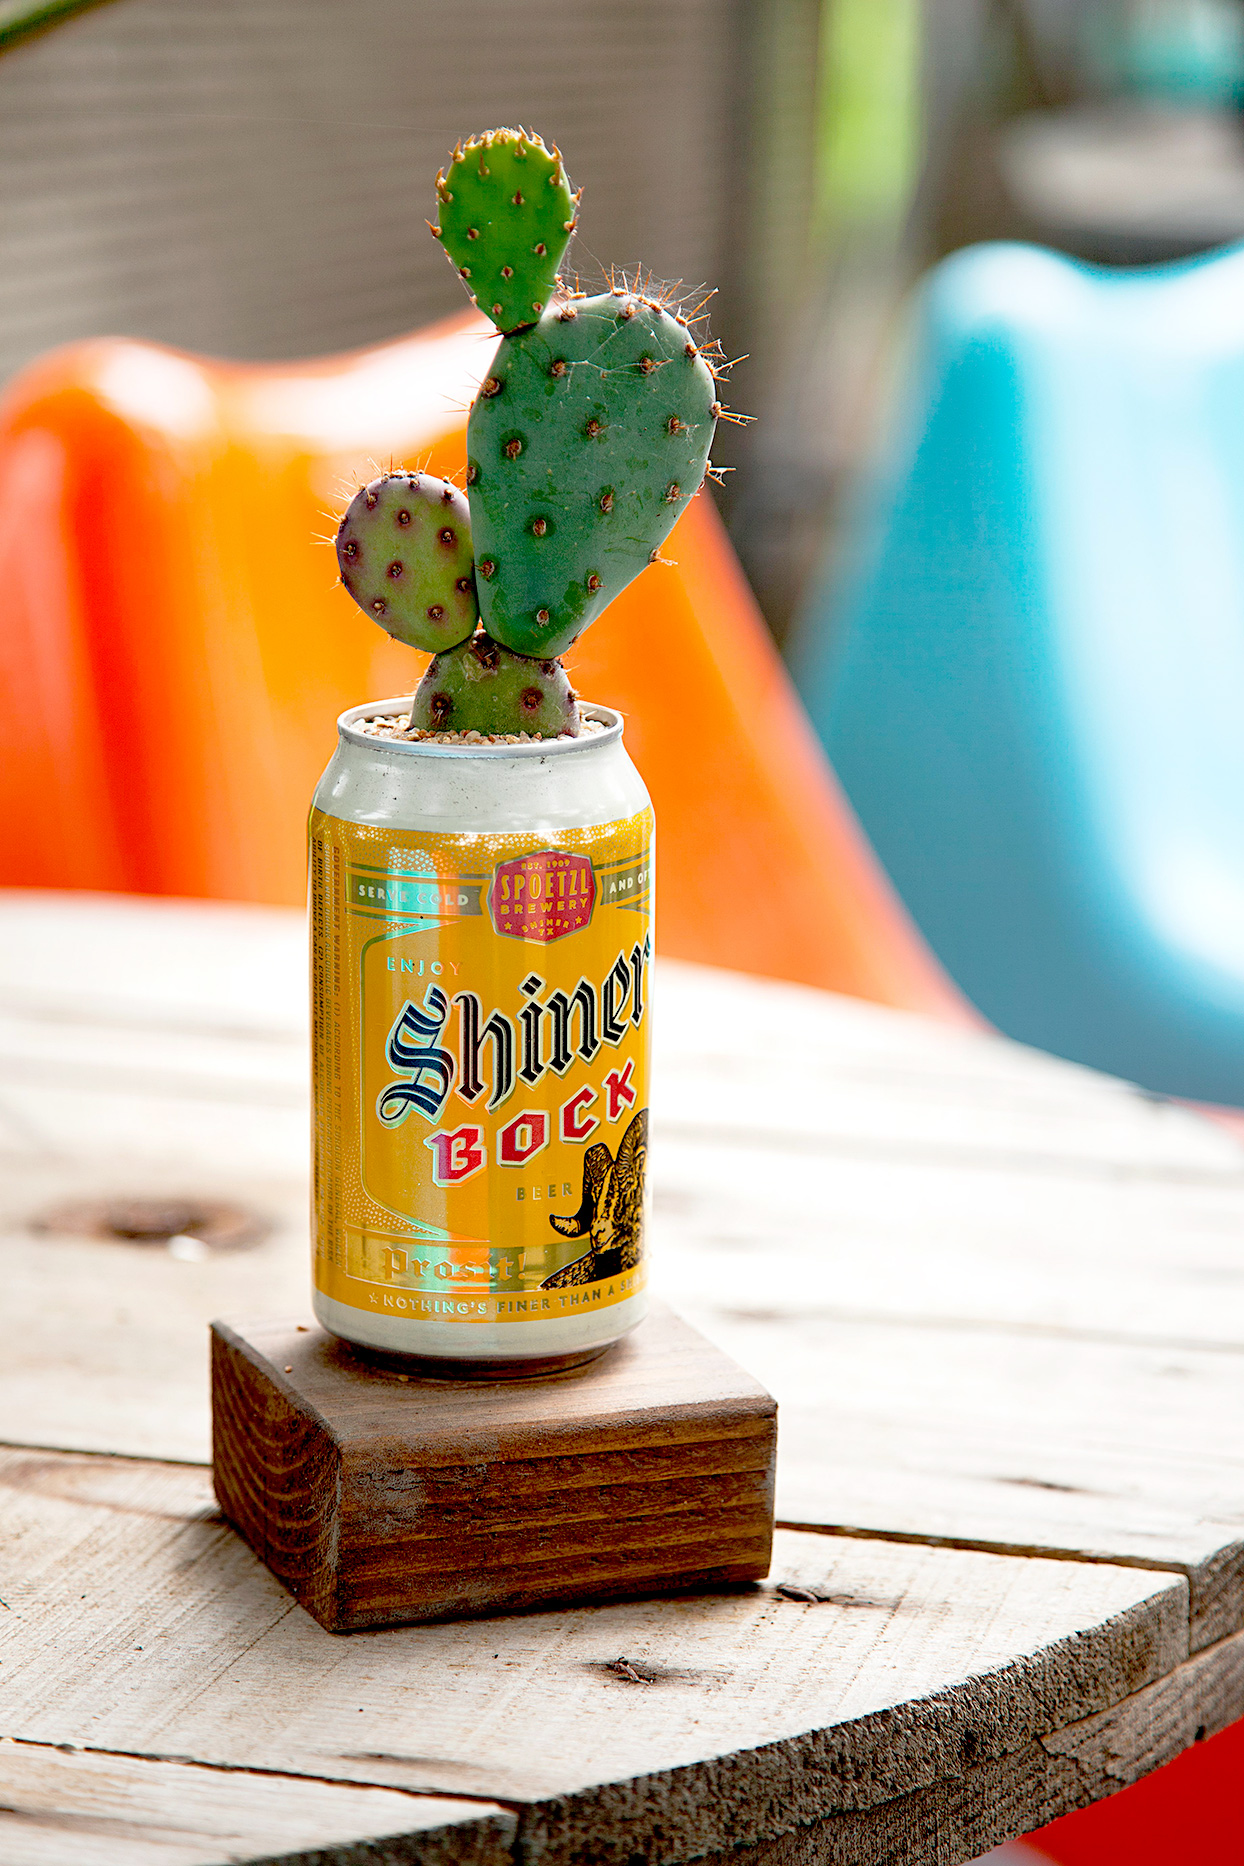 Shiner Bock can used as cactus planter